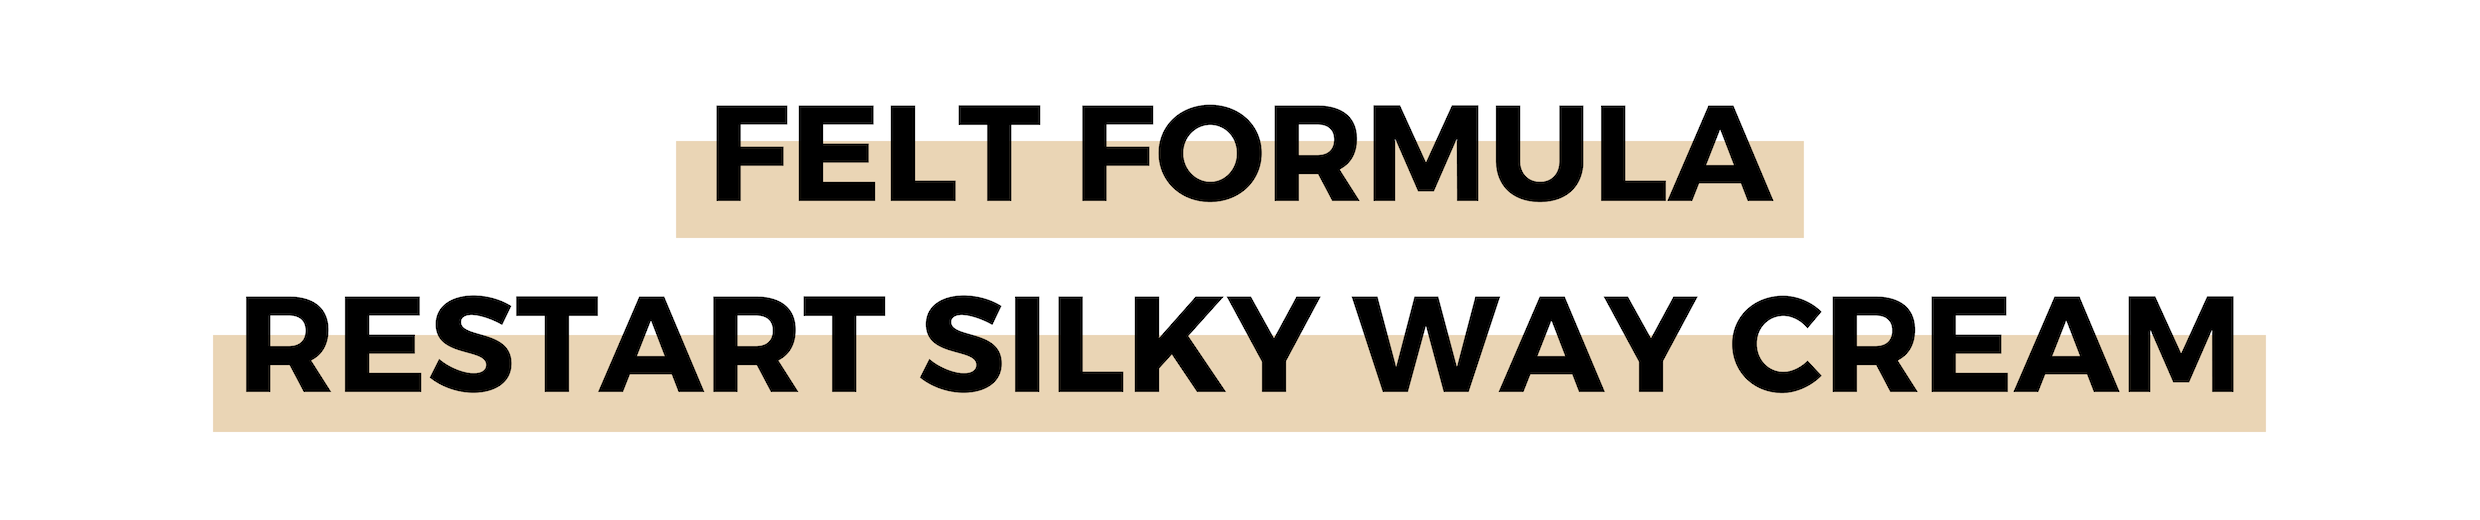 FELT FORMULA RESTART SILKY WAY CREAM.png